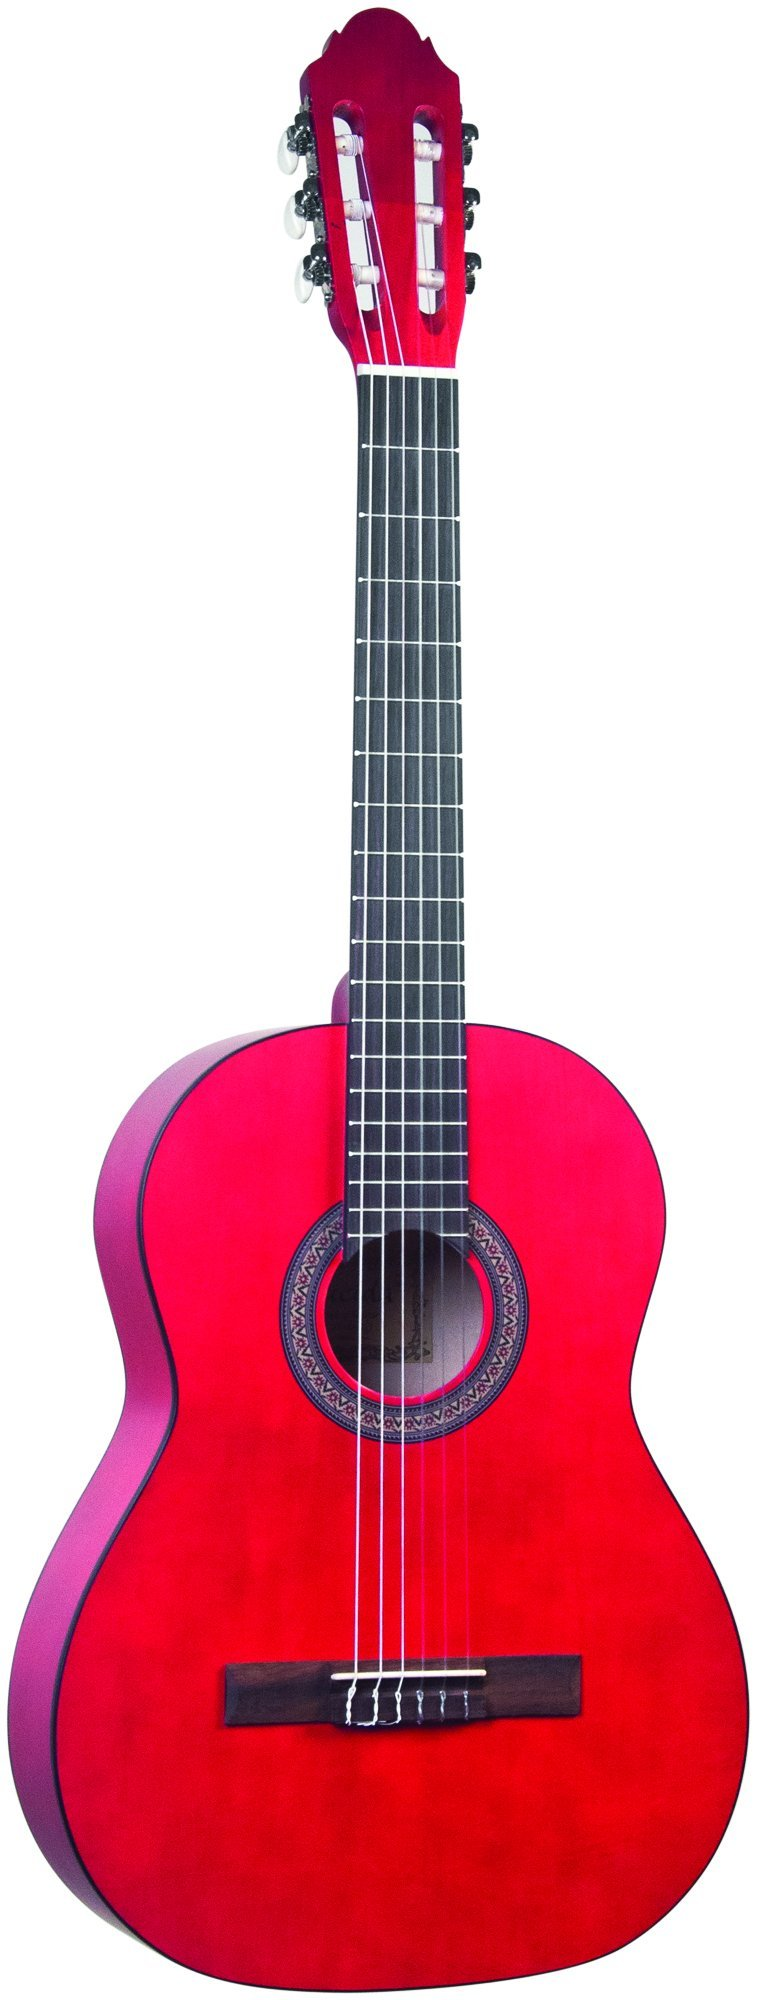 Lucida LG-400-3/4RD Student Classical Guitar, Red, 3/4 Size